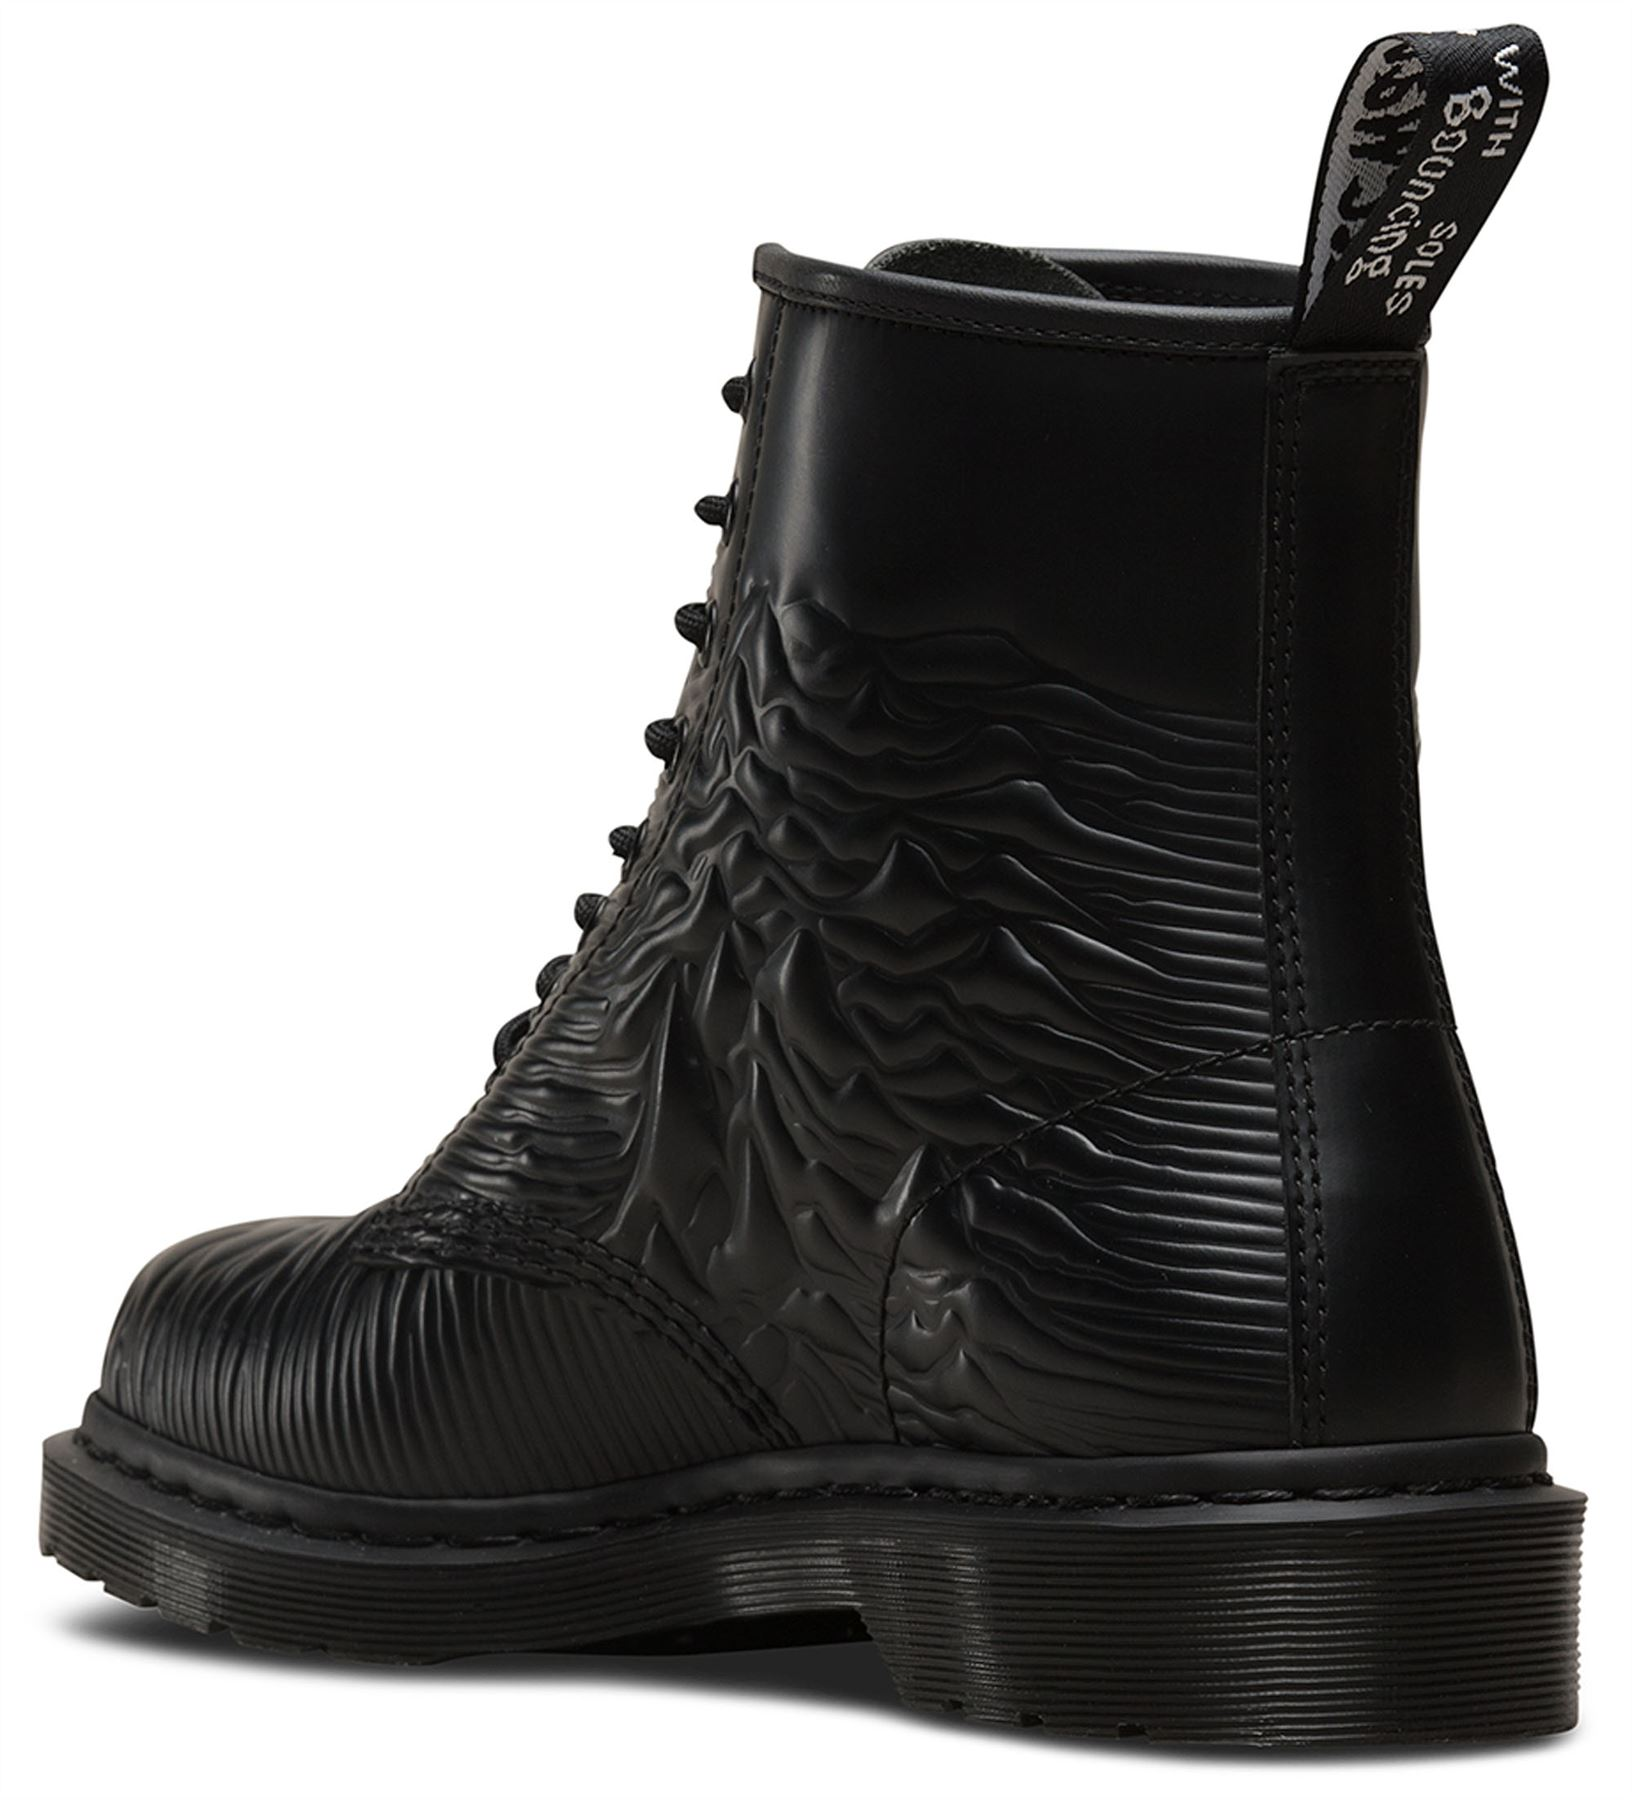 DR Martens Martens Martens 1460 unknown pleasures Joy Division Nero Liscio Stivali in Pelle 1bc5d7